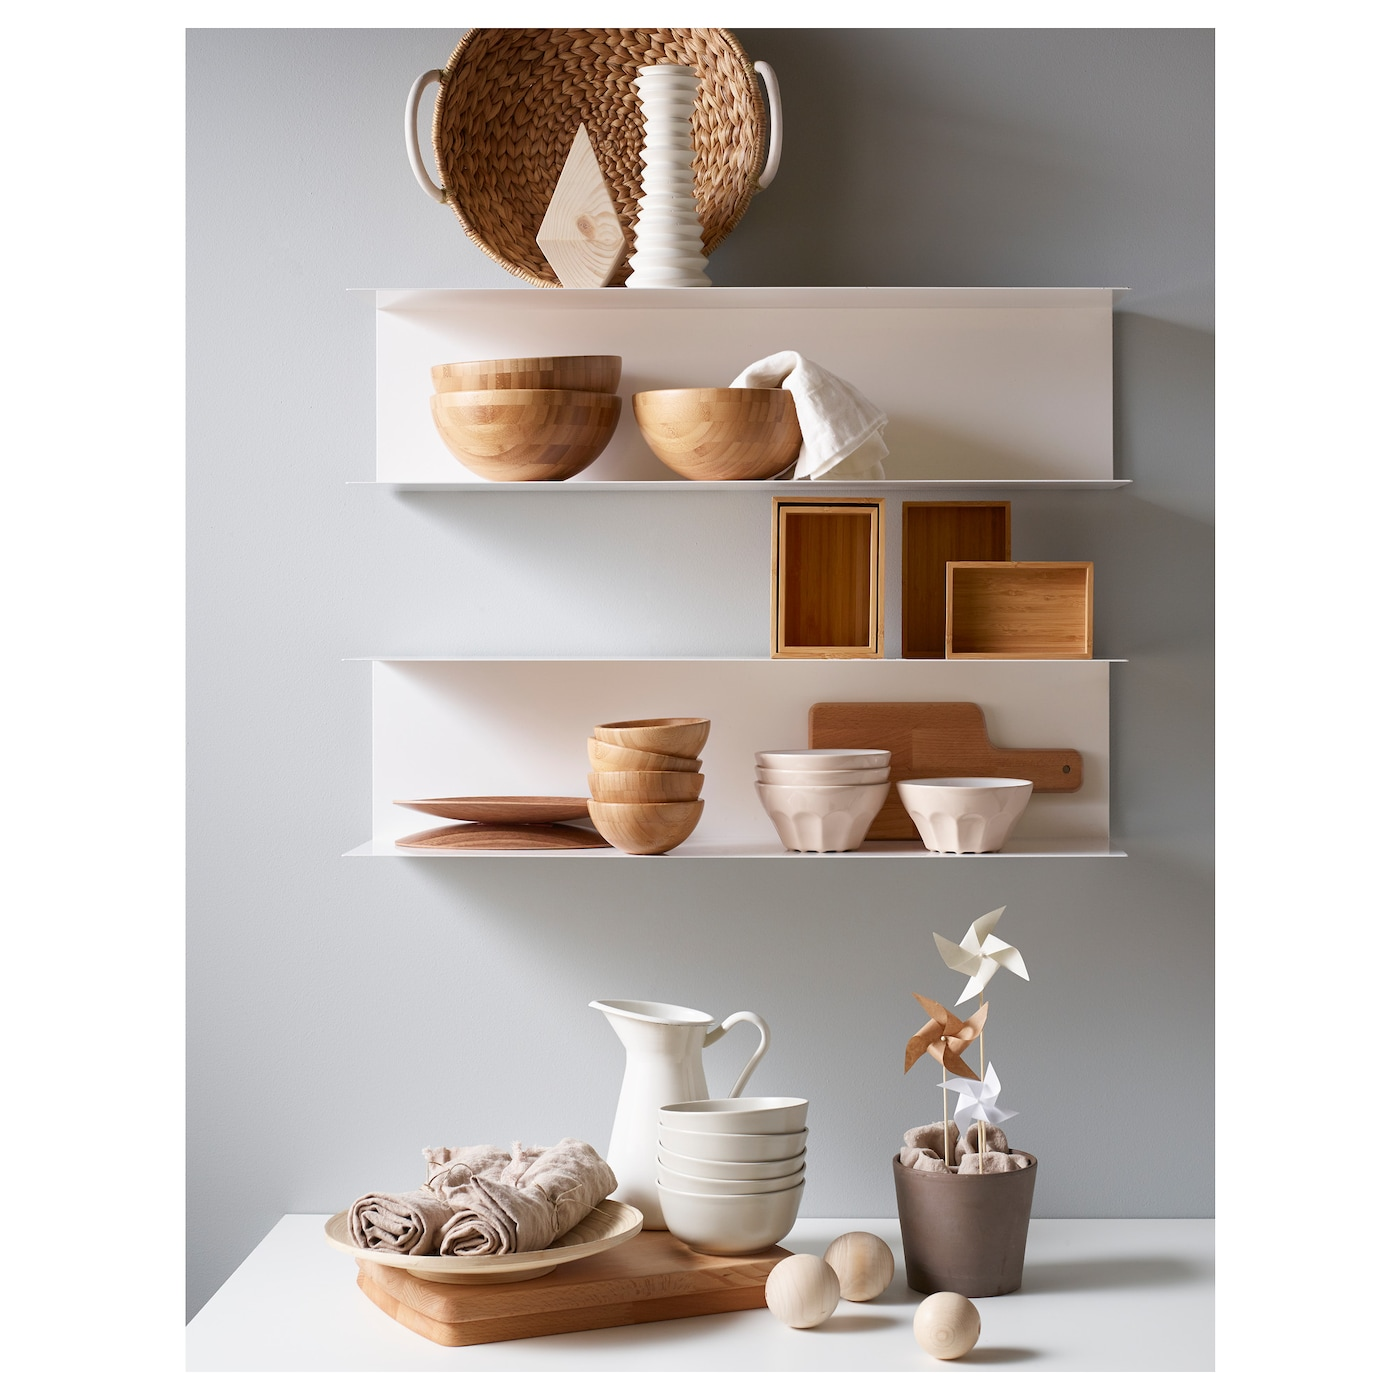 BOTKYRKA Wall Shelf White 80 X 20 Cm